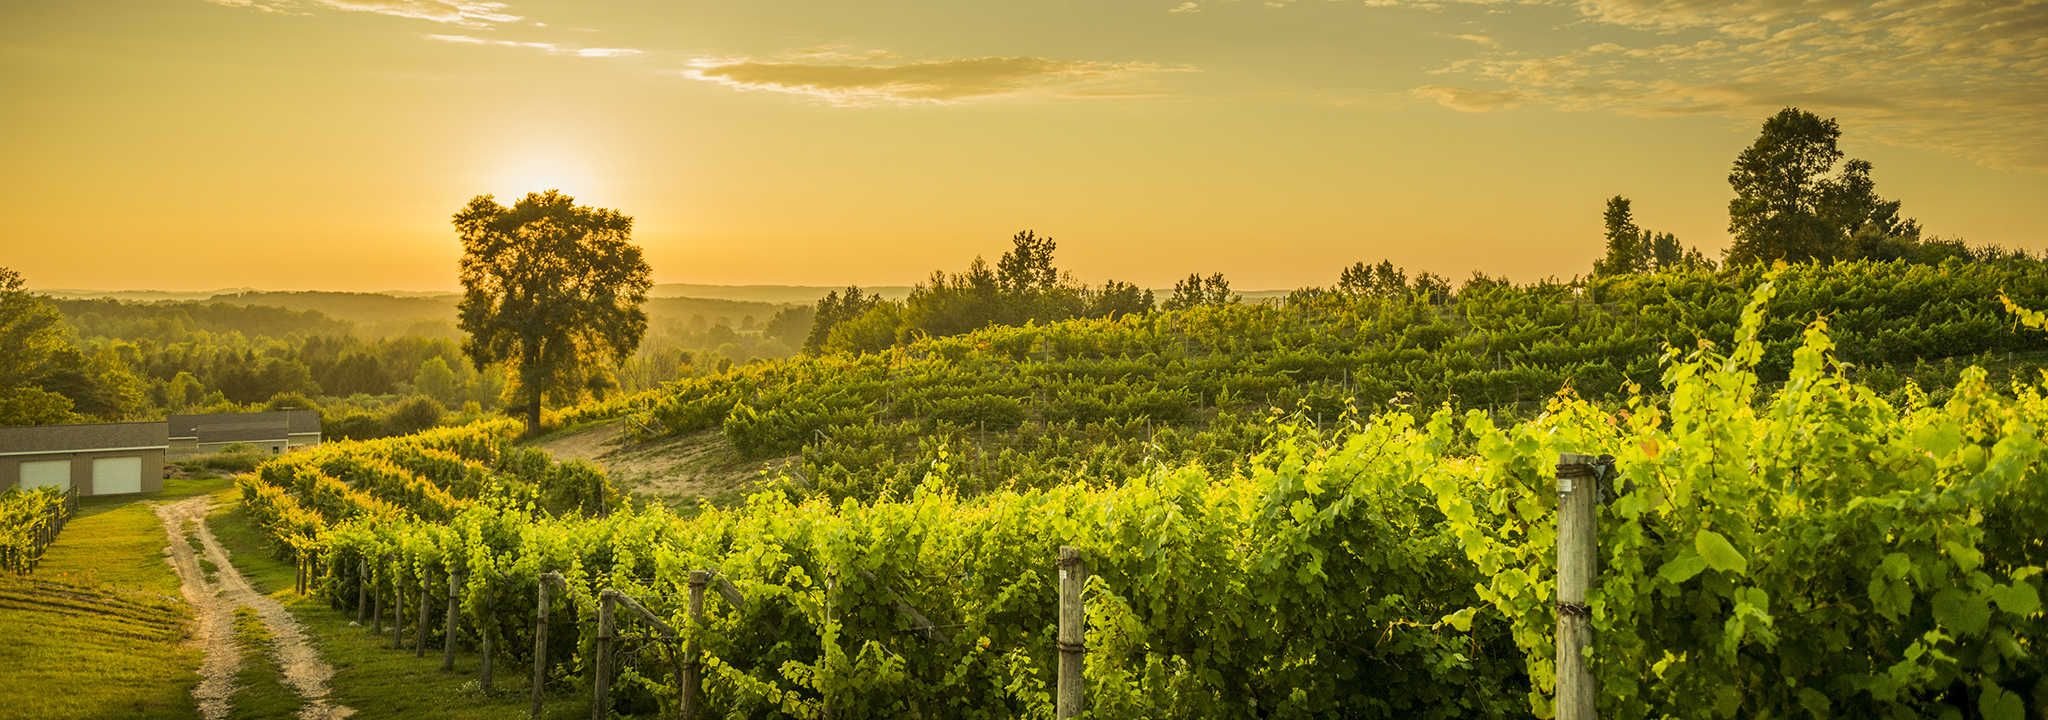 This Summer Enjoy The Many Wineries Vineyards And Festivals Around Traverse City Mi Browse Our Listings Vineyard Tour Traverse City Wineries Traverse City